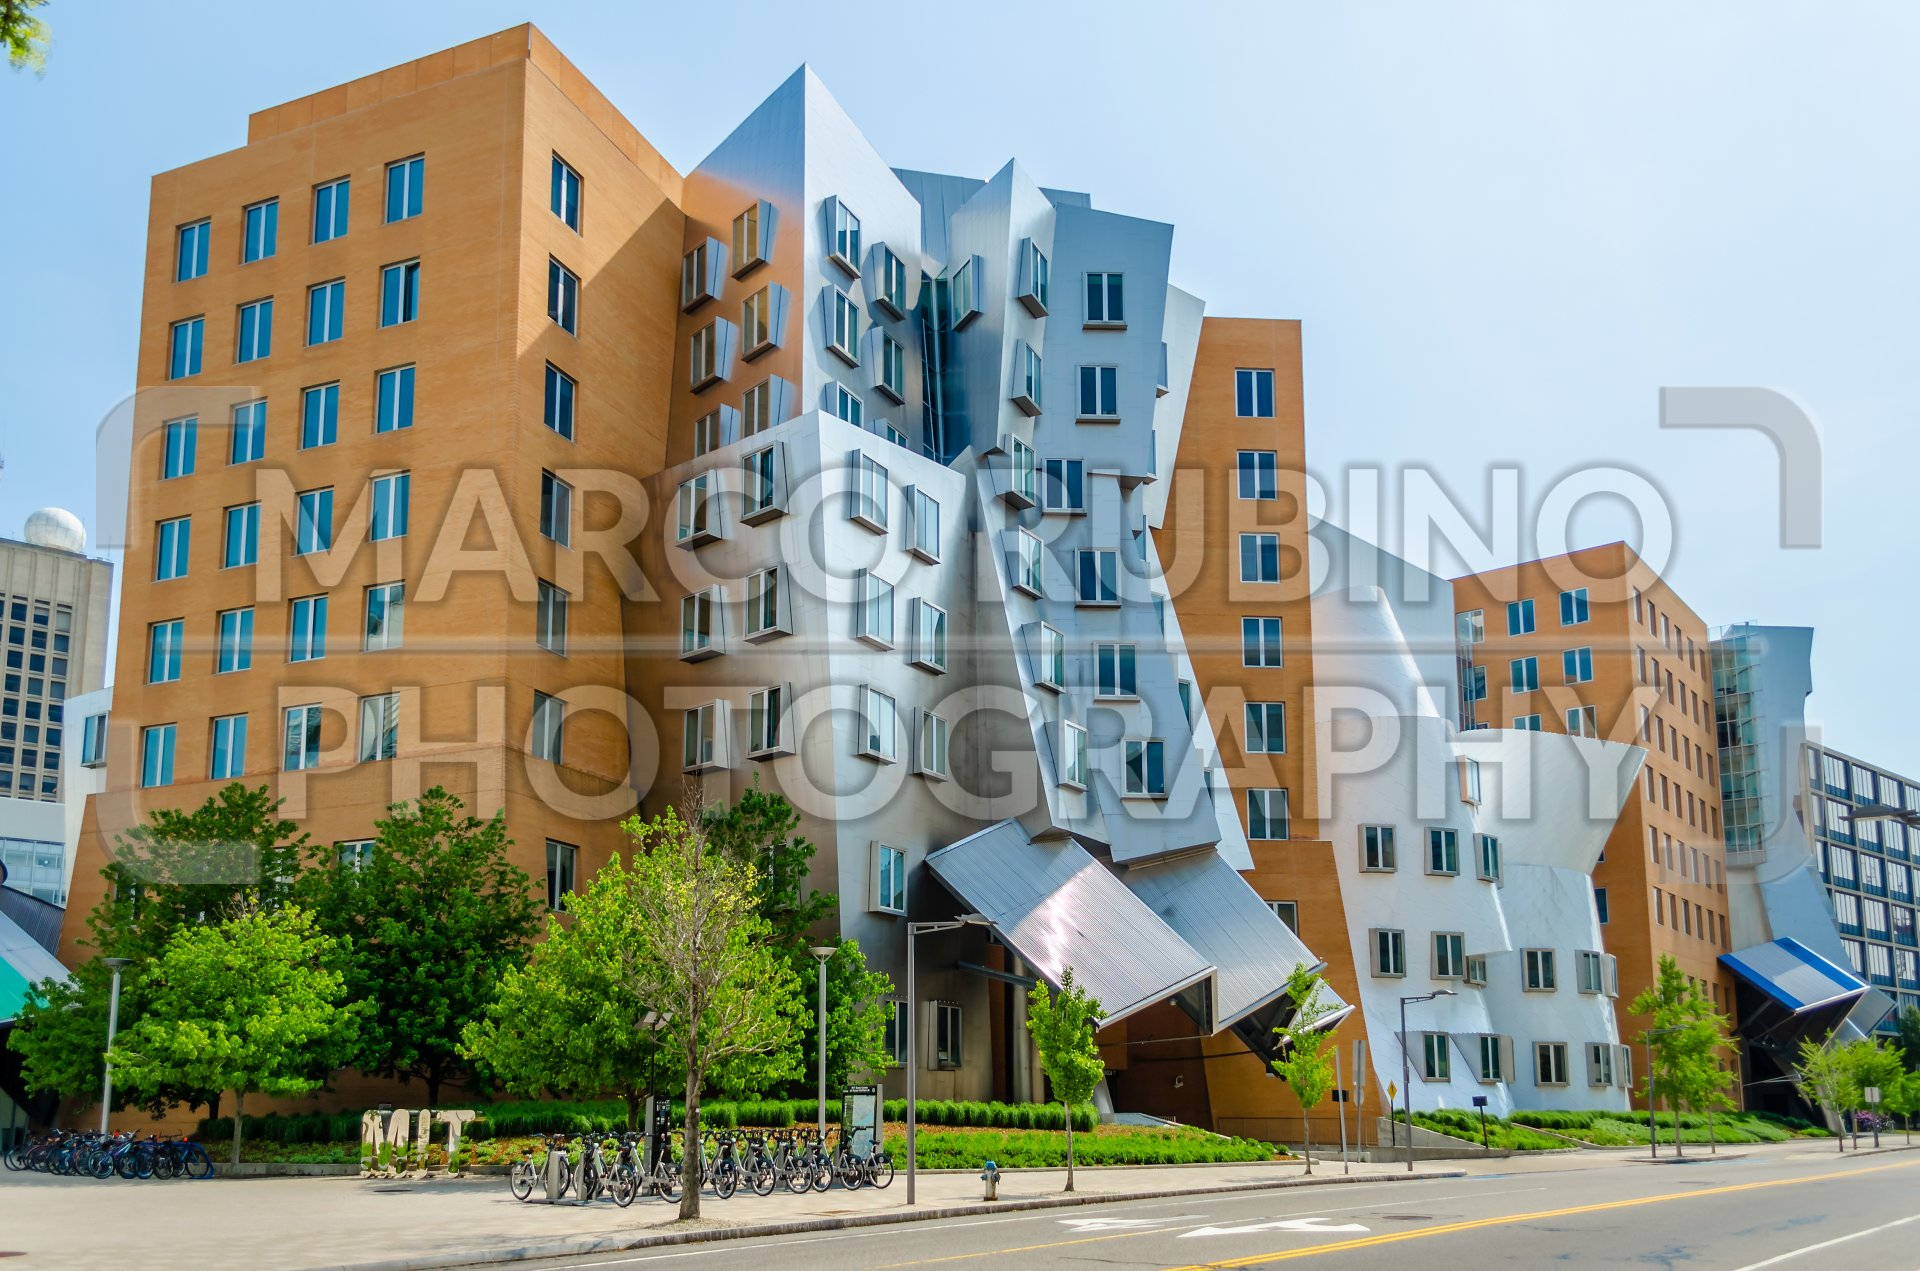 Iconic Postmodern Architecture Of MIT Strata Center Cambridge USA